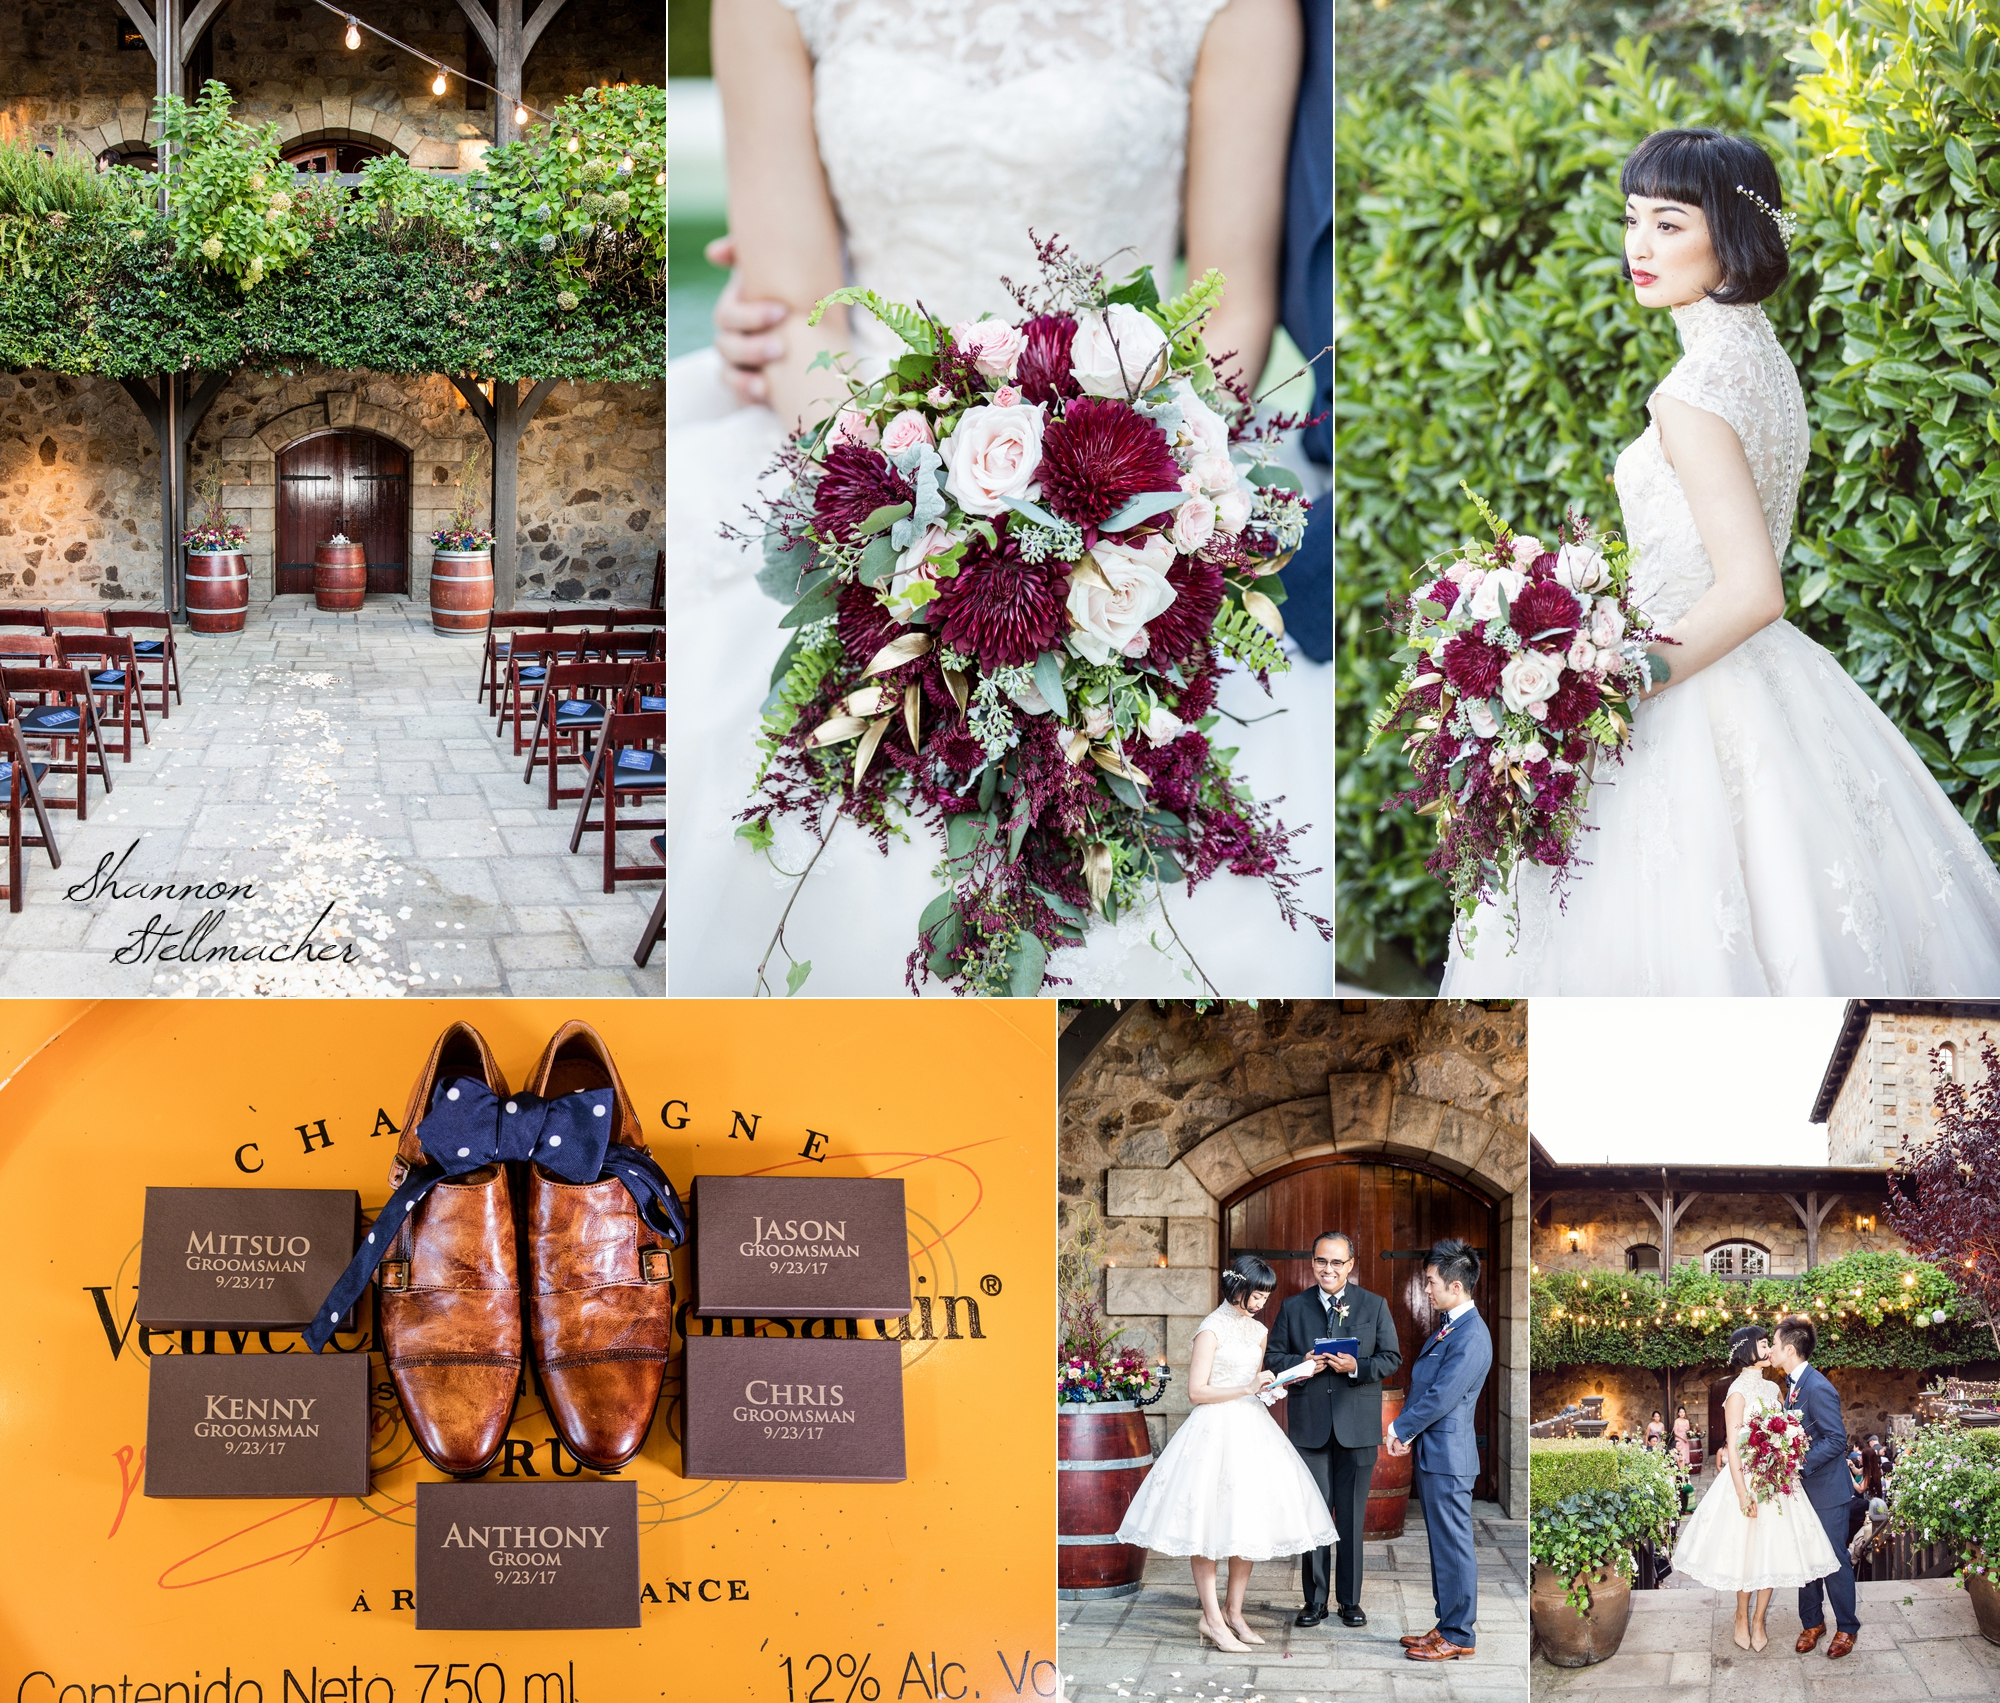 V. Sattui Winery Napa Wedding 2.jpg